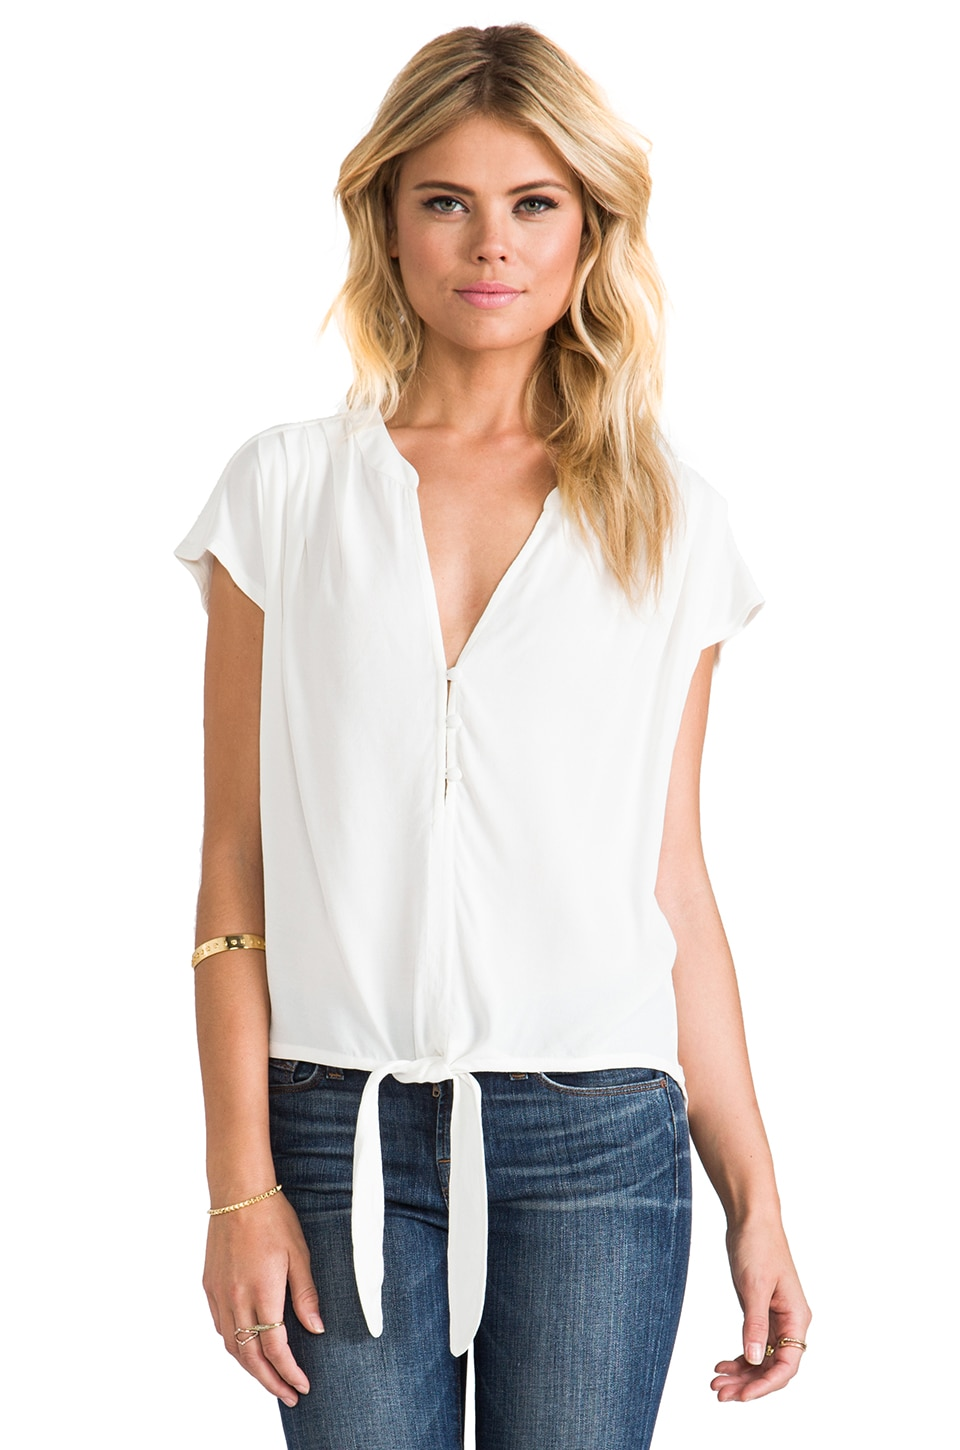 Soft Joie Chally Top in Porcelain